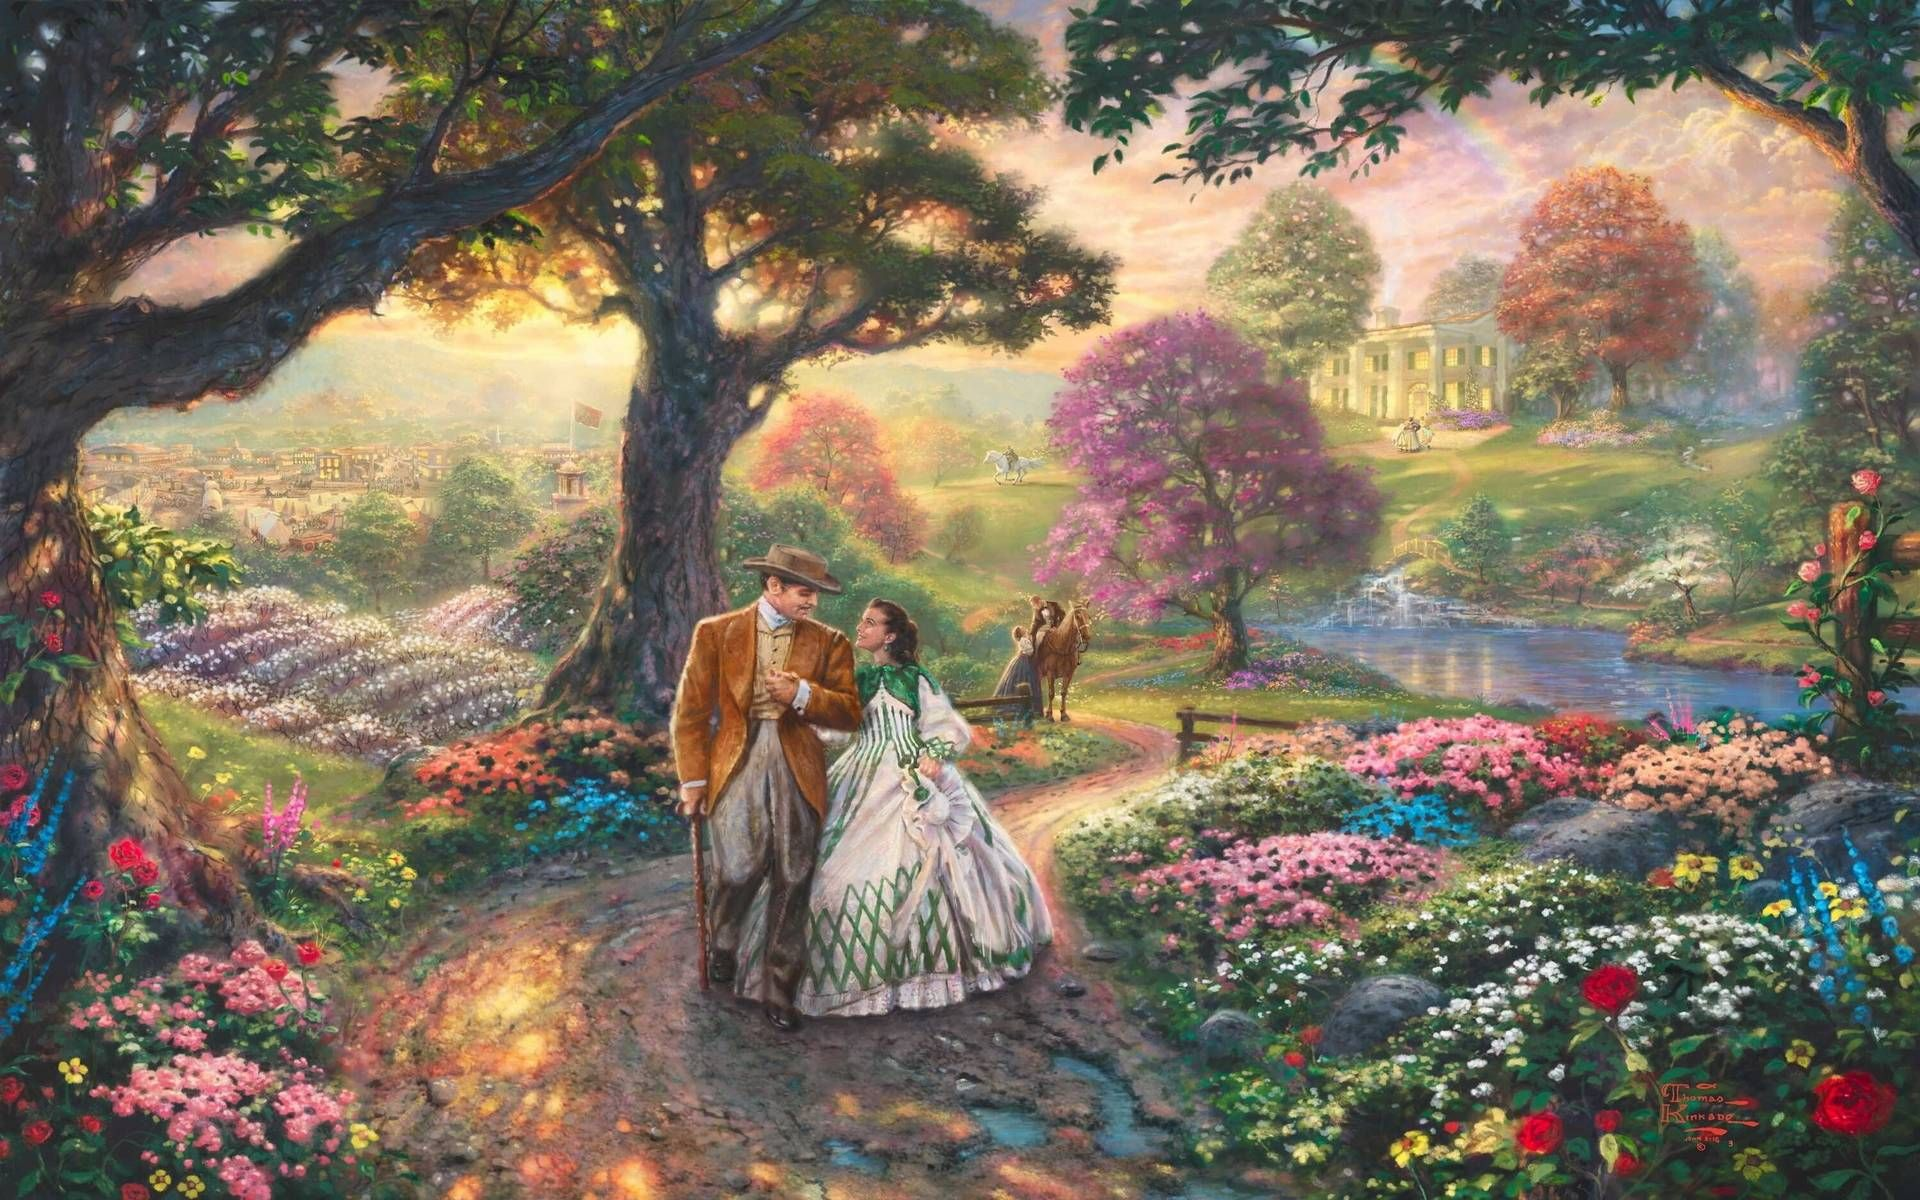 Thomas Kinkade Disney Wallpapers Wallpaper Cave Thomas Kinkade